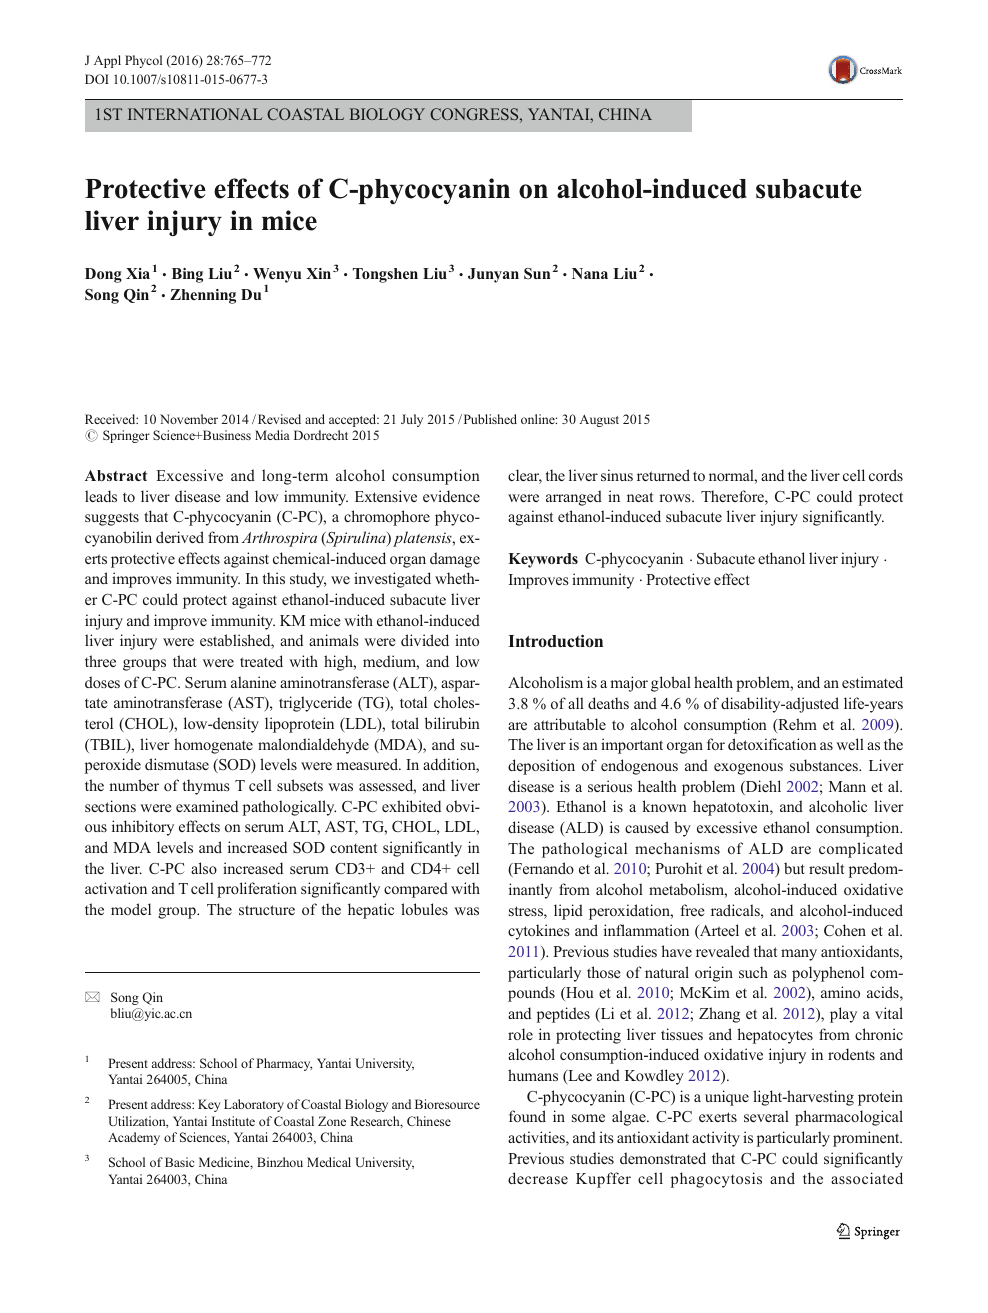 Protective effects of C-phycocyanin on alcohol-induced